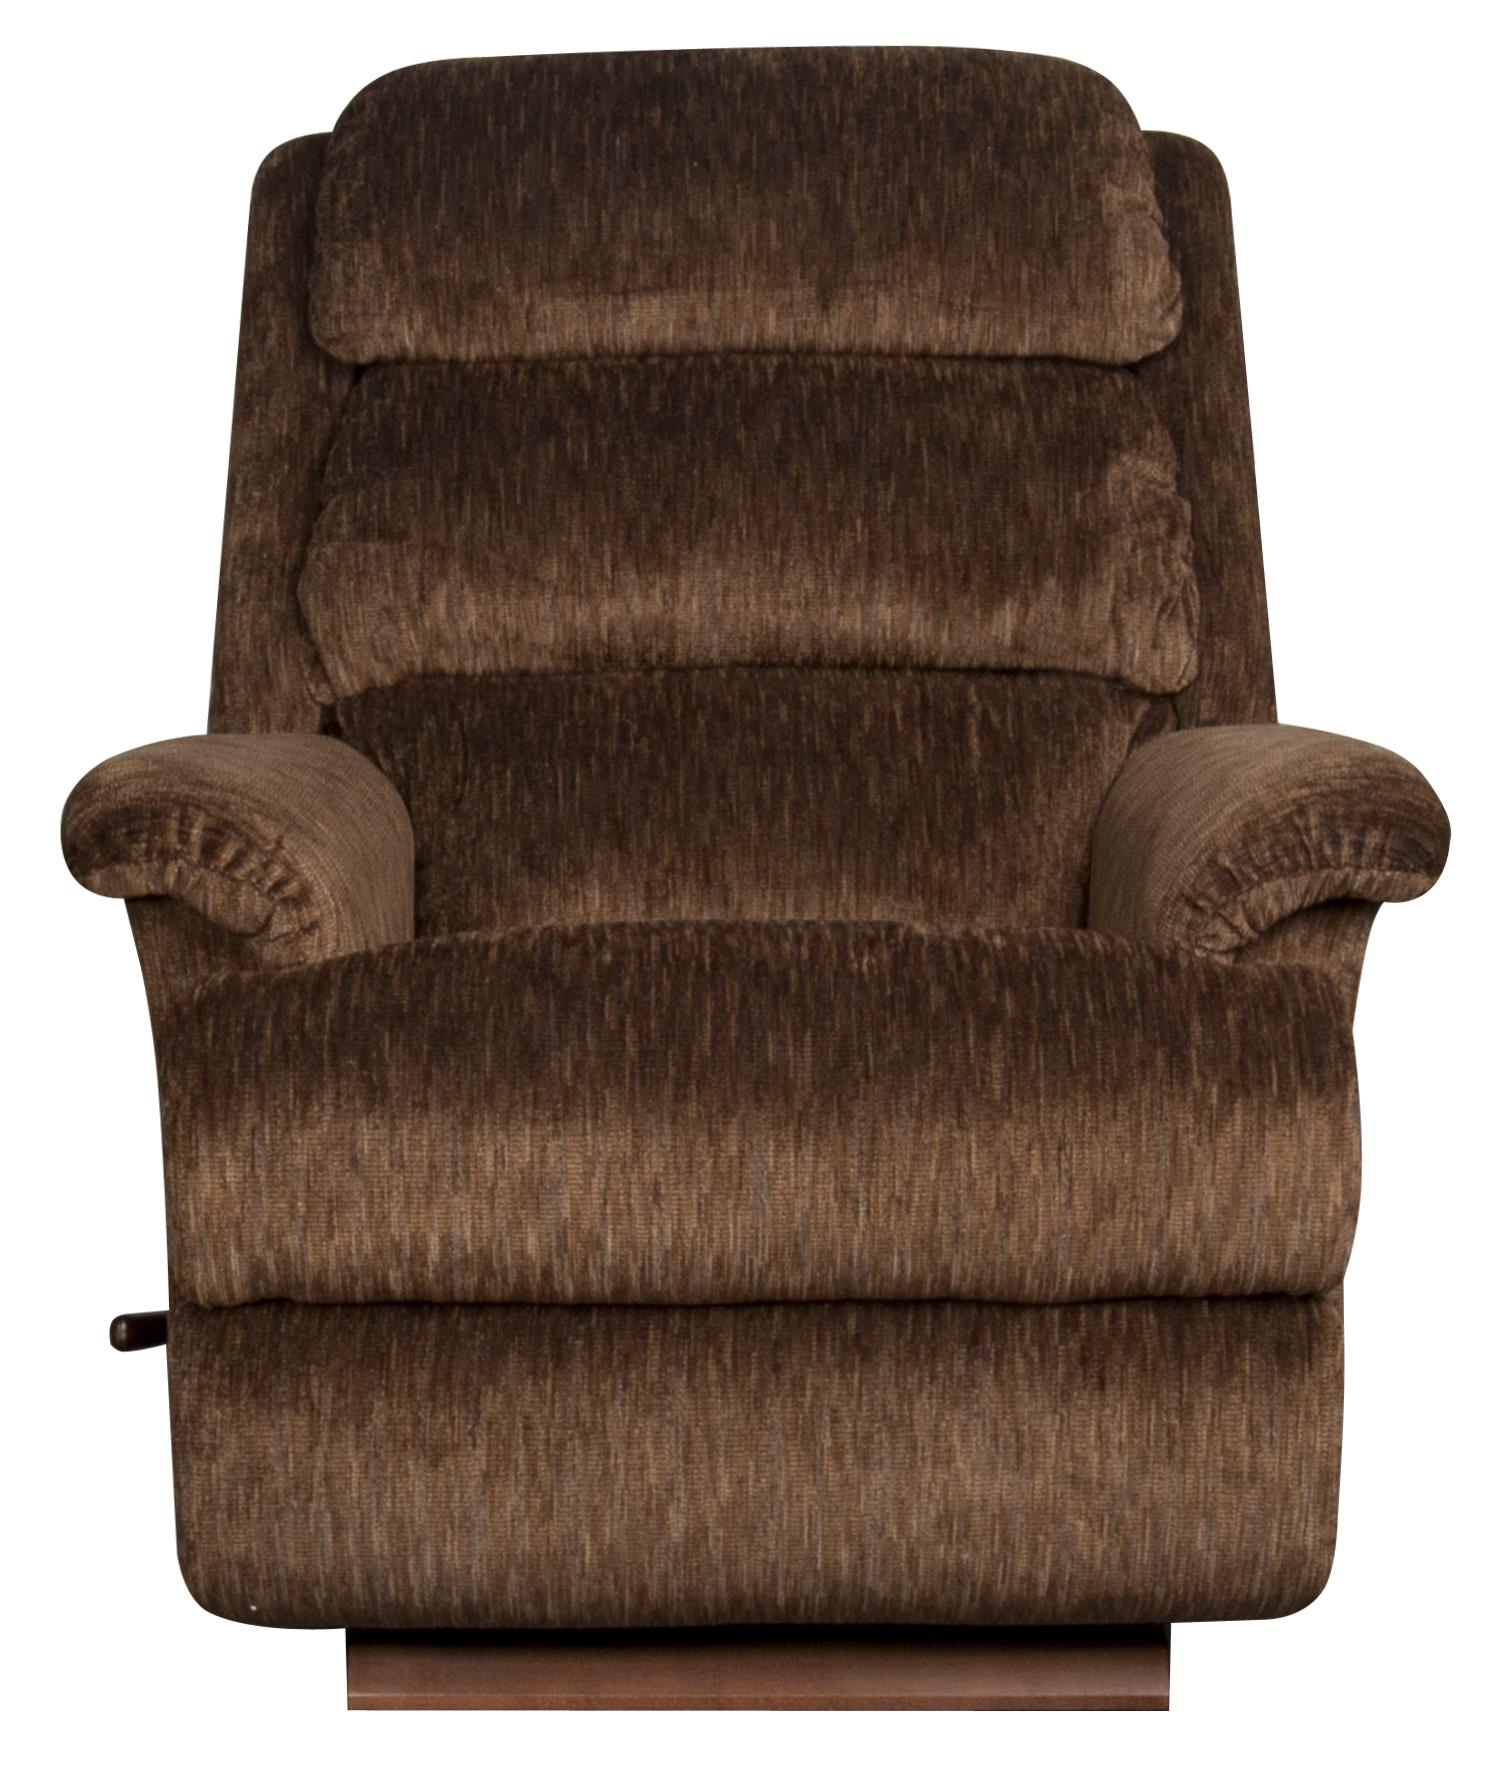 La-Z-Boy Astor Astor Rocker Recliner - Item Number: 833520656